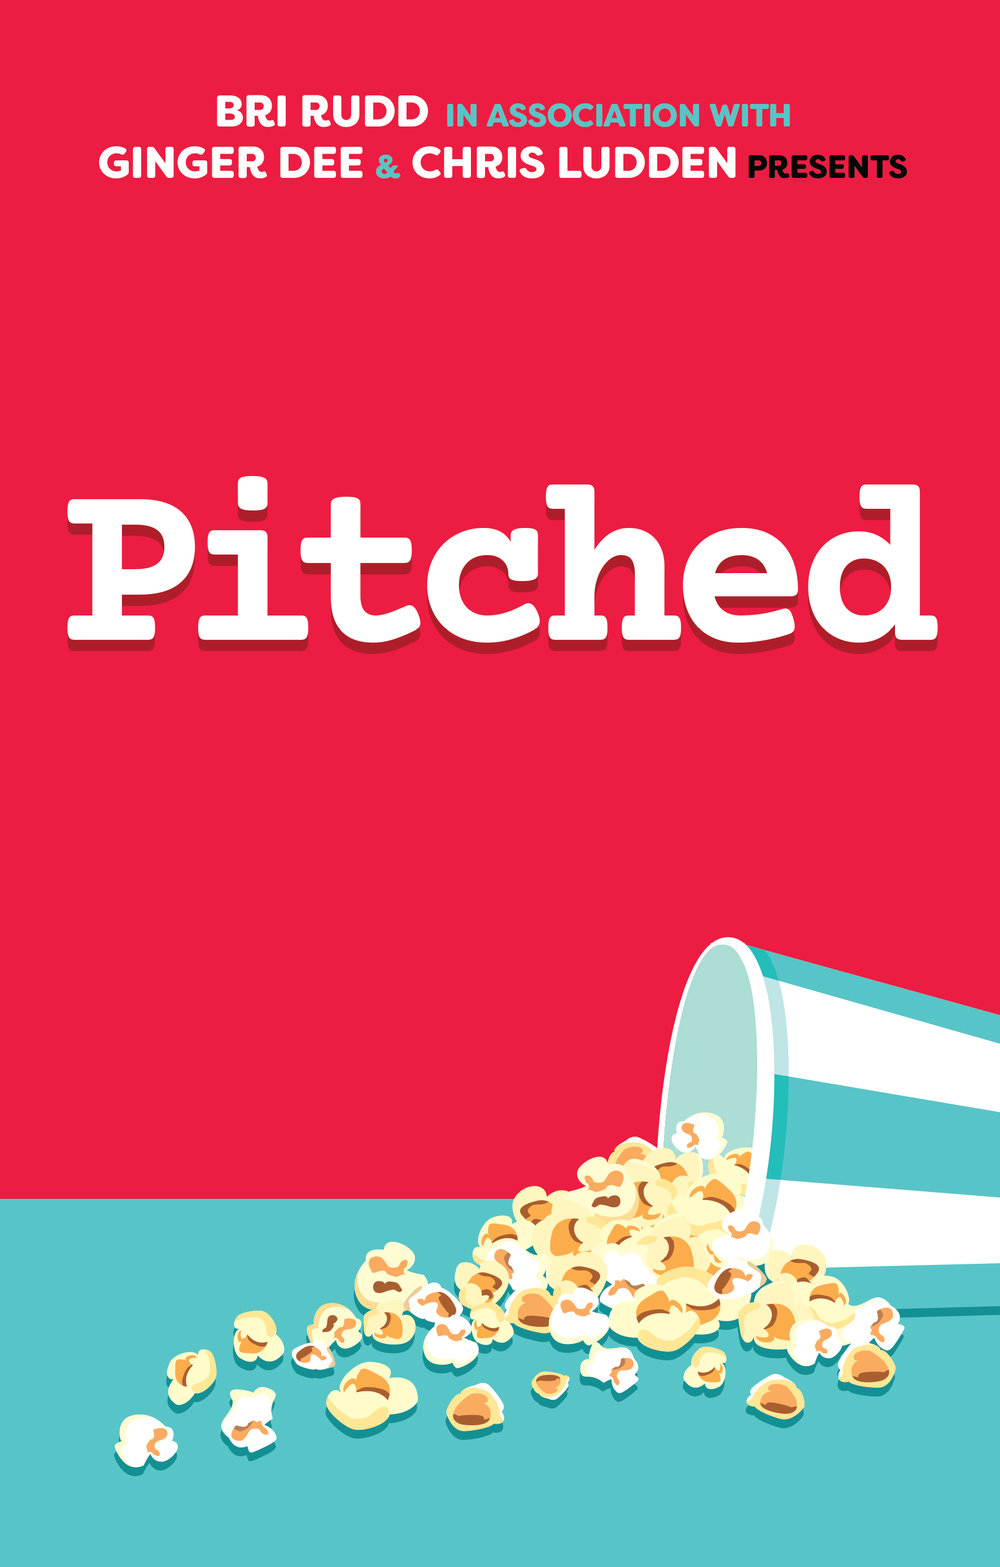 Pitched - by Bri Rudd, Ginger Dee, and Chris LuddenOver 100 pages of movie ideas TOO AWESOME for Hollywood. ...because they're jokes. In this book you'll find comics, prose, scripts, and even reviews of the best movies that we'd never seriously want see to get made. Unless you've got big studio money to throw around. We're overflowing with artistic integrity but we've also got mortgages. We accept wire transfers, most major credit cards, and personal checks.2017, 124 pgs